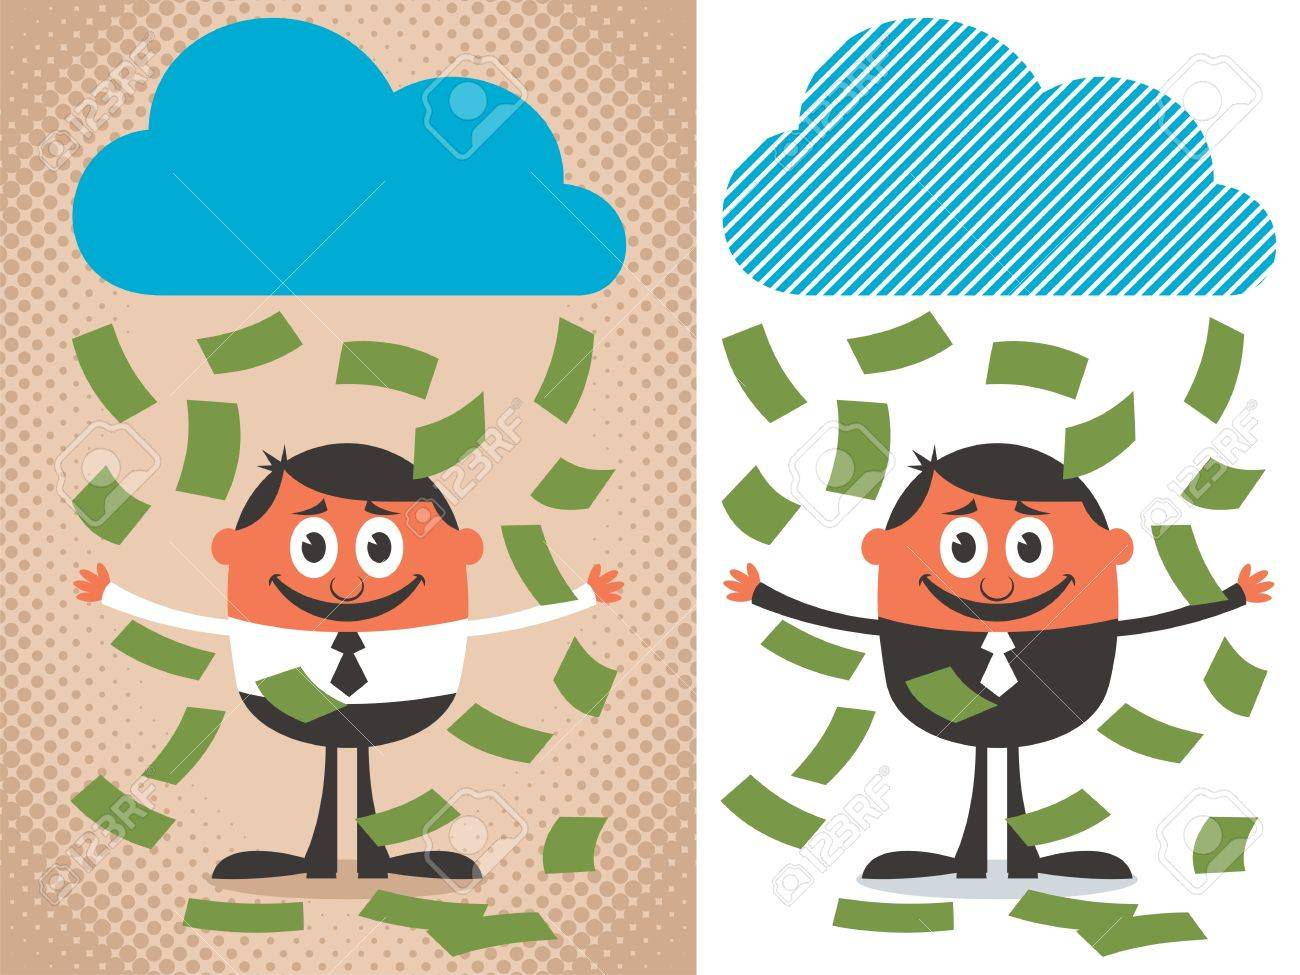 Money raining over cartoon character. The illustration is in 2 versions. No transparency and gradients used. Stock Vector - 13302602